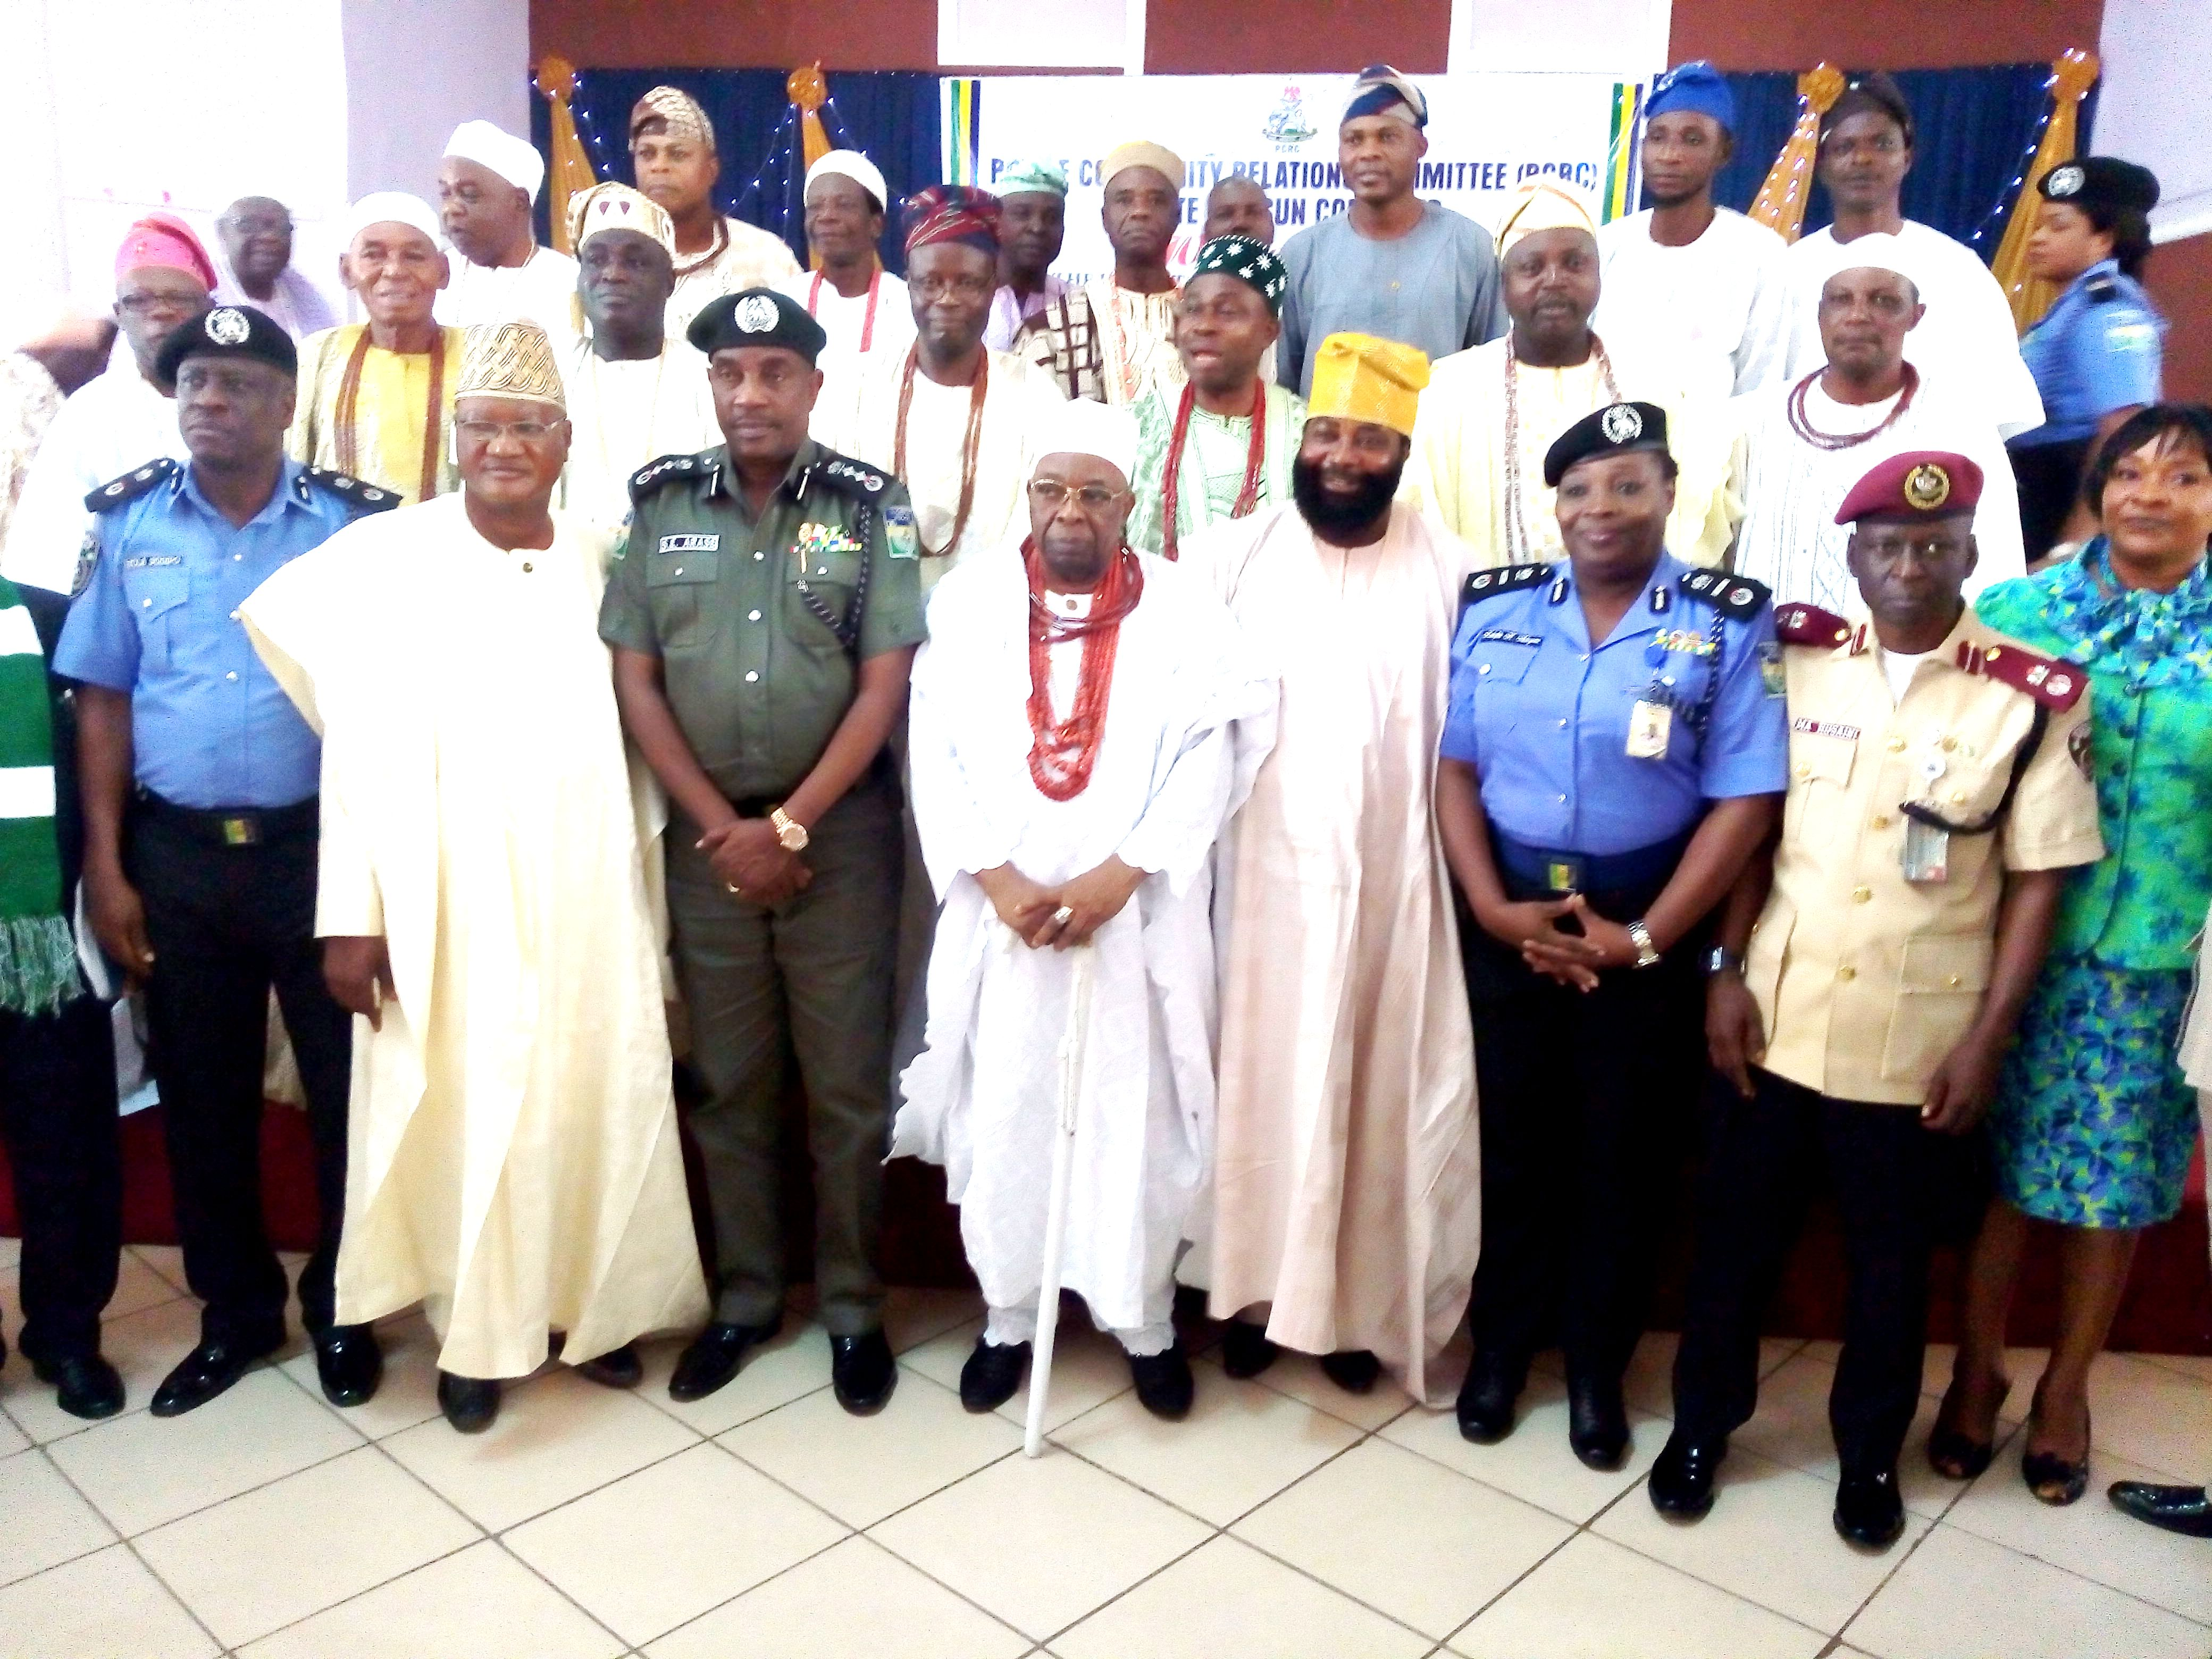 From left, Police Commissioner, Osun State Command, Mr. Kola Sodipo; South West Zonal Chairman of the Police Community Relations Committee (PCRC), Otunba Femi Arowosola; Inspector General of Police (IGP), Solomon Arase; the Owa Obokun of Ijeshaland, Oba Adekunle Aromolaran;Osun State Chairman of CPRC, Comrade Amitolu Shittu; Assistant Inspector General of Police, Mrs Adeyemi Kalafite and others, after a meeting, during a recent familiarization tour by the IG at Osogbo, the State capital of Osun